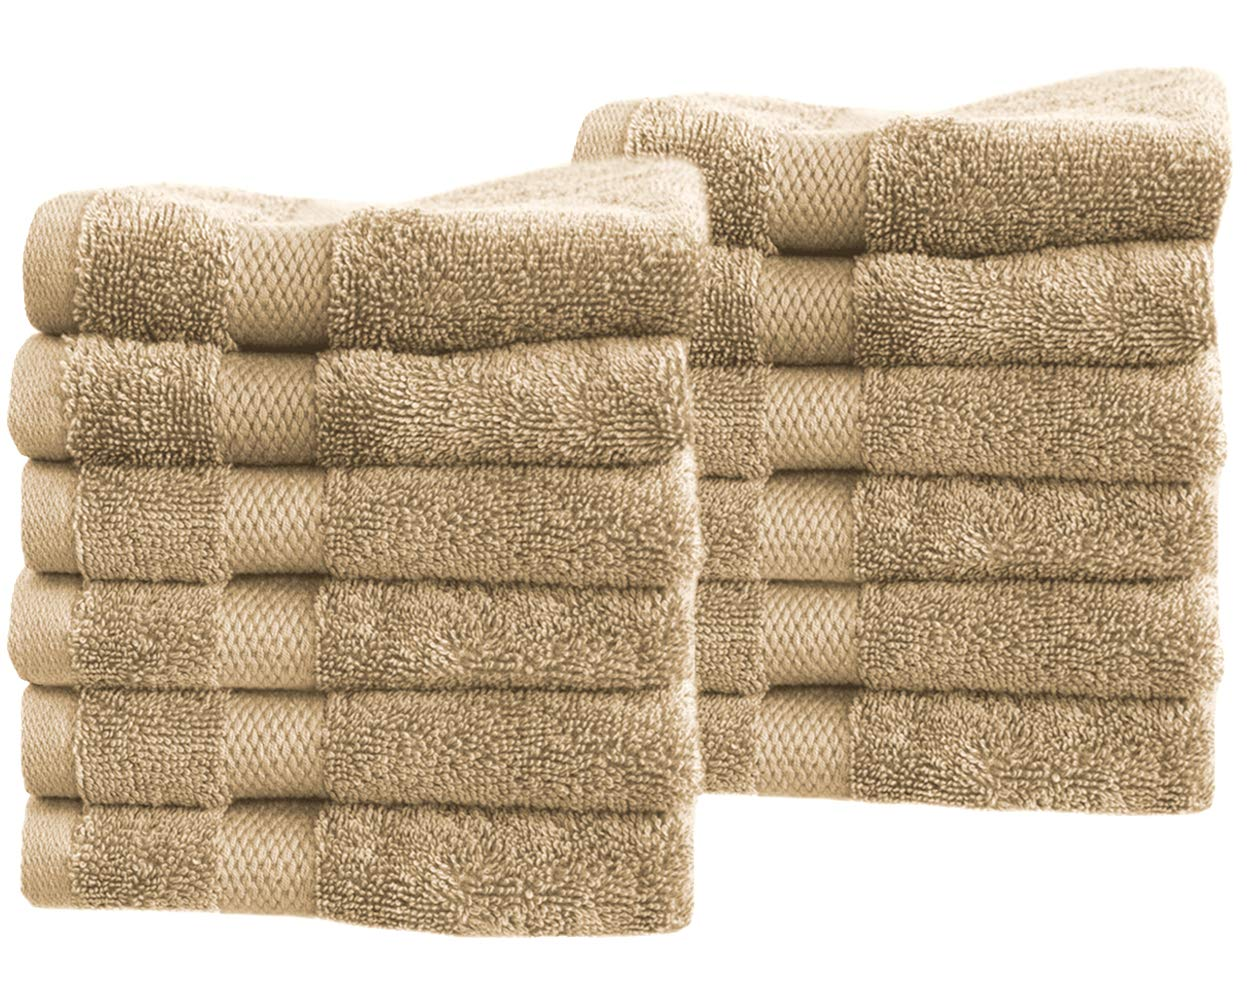 """Cotton & Calm Exquisitely Fluffy Washcloths/Face Cloths Towel Set (12 Pack, 13"""" x1 3""""), Premium Beige Washcloths - Super Soft, Thick, and Absorbent for Face, Hand, Spa & Gym"""